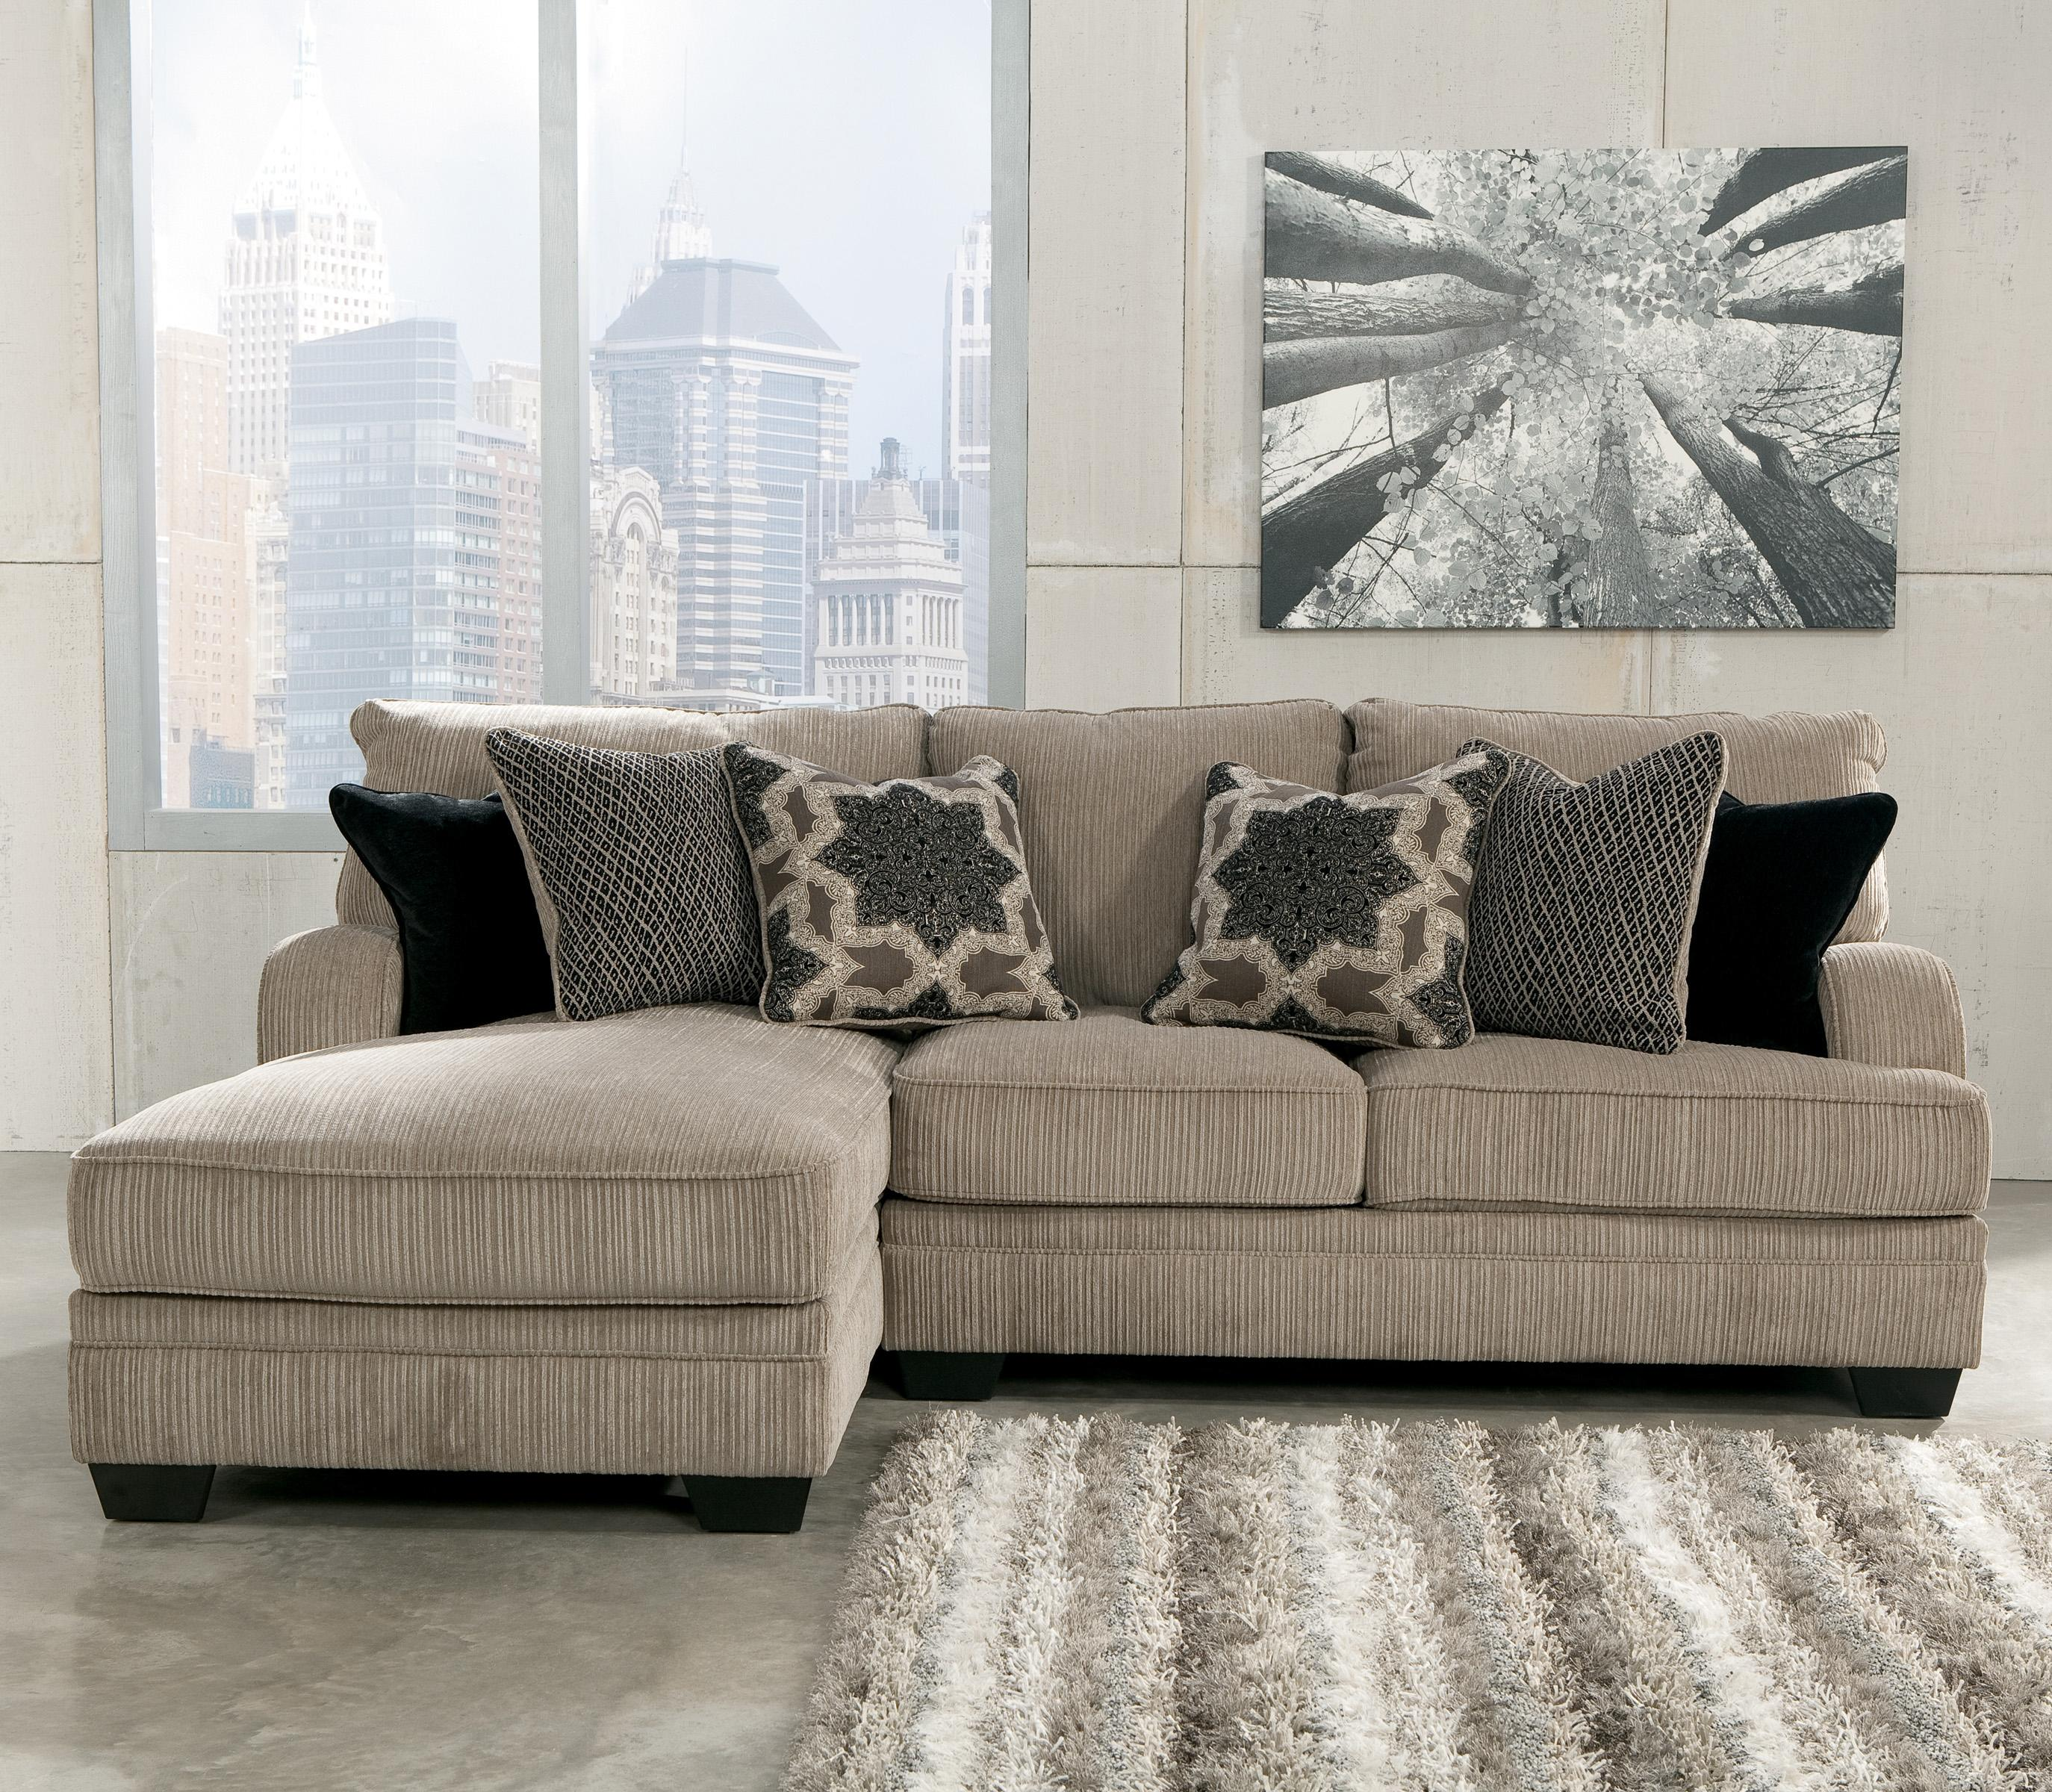 Signature Design by Ashley Katisha - Platinum 2-Piece Sectional with Left Chaise - AHFA - Sofa Sectional Dealer Locator : 2 piece chaise sectional - Sectionals, Sofas & Couches